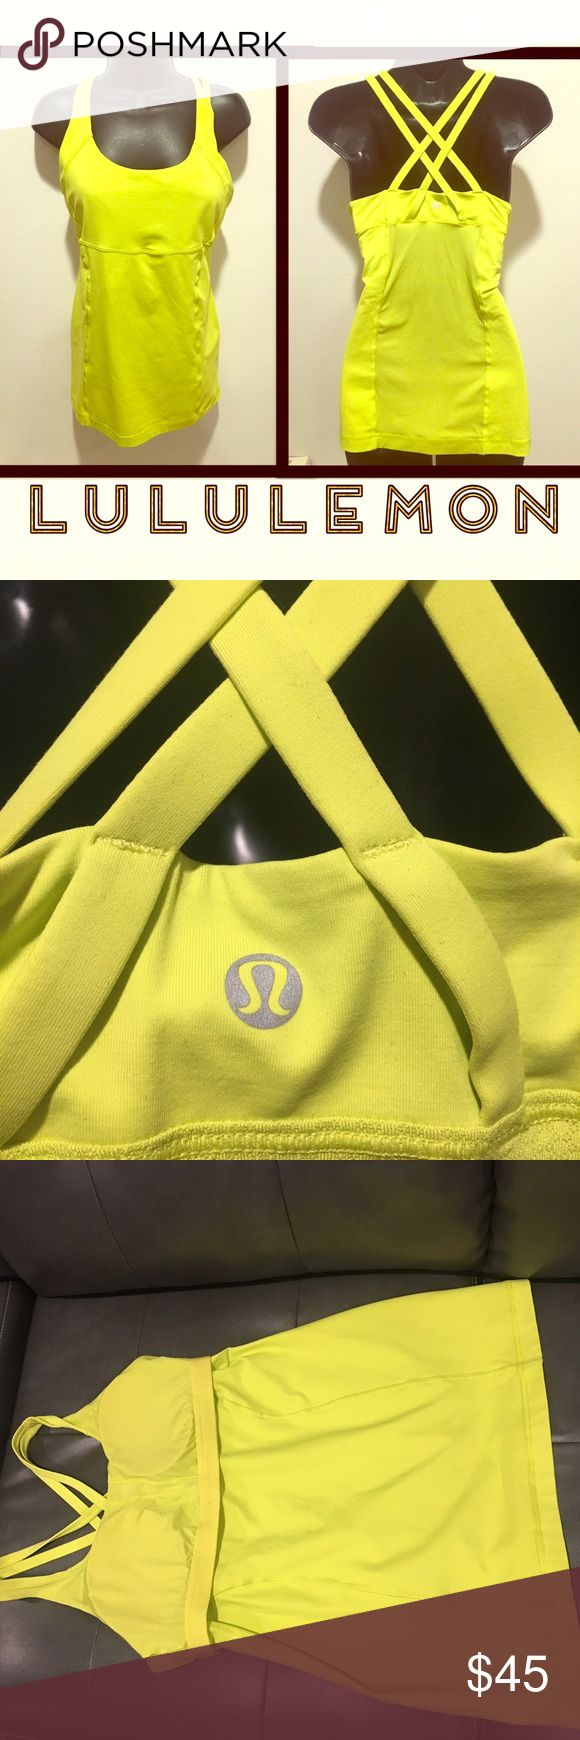 LULULEMON yellow tank with built in bra GUC The third image shows the tank inside out to show that there is very little pilling. No rips. No odors, stains. Comes from a pet and smoke free home. Will ship the same or next day. No trades. No paypal. No modeling. Can come with one free $10 or less item. lululemon athletica Tops Tank Tops